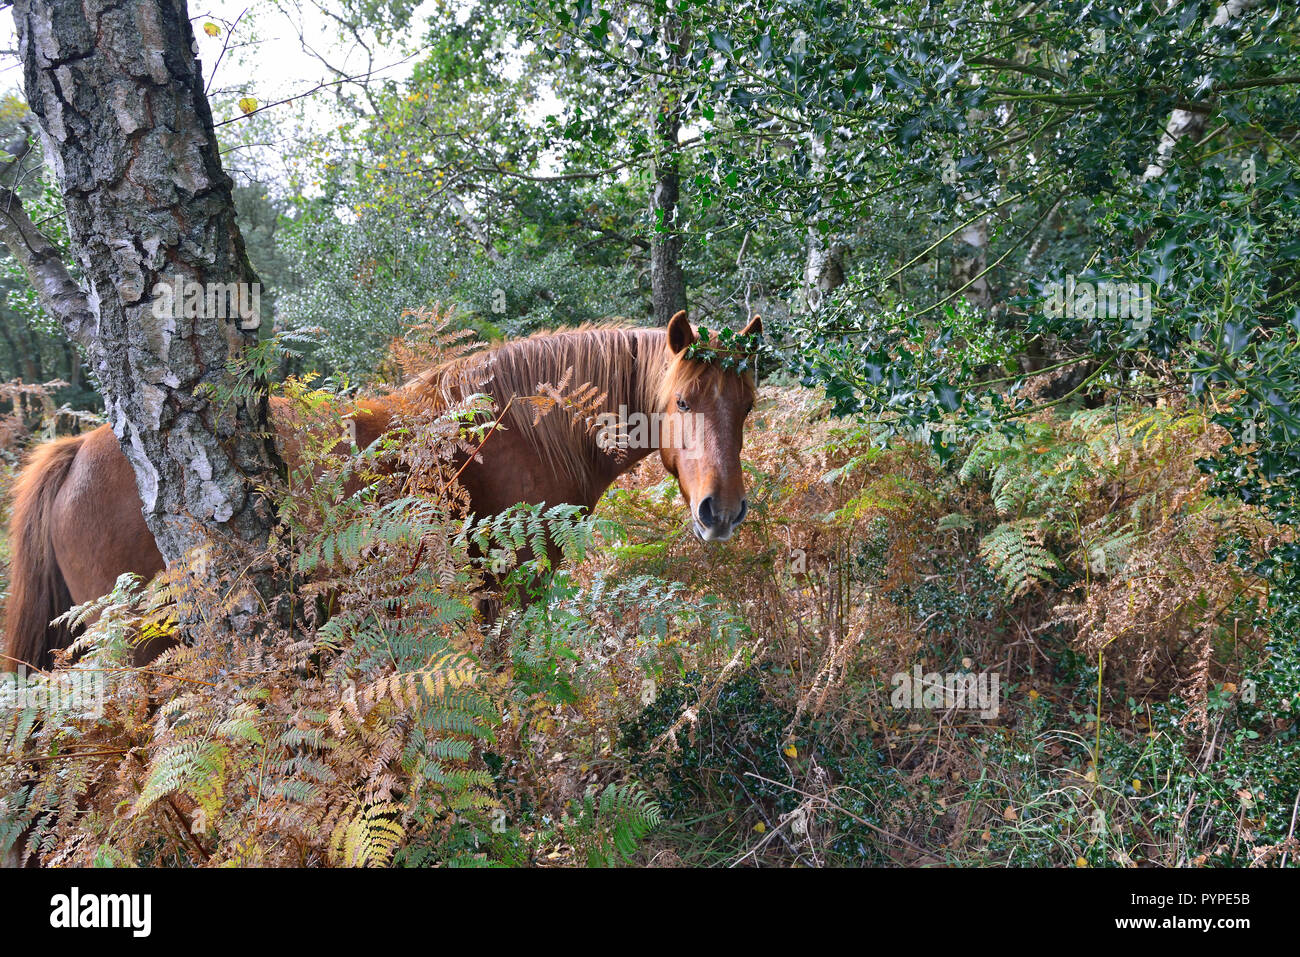 The New Forest pony is one of the recognised mountain and moorland or native pony breeds of the British Isles. Stock Photo